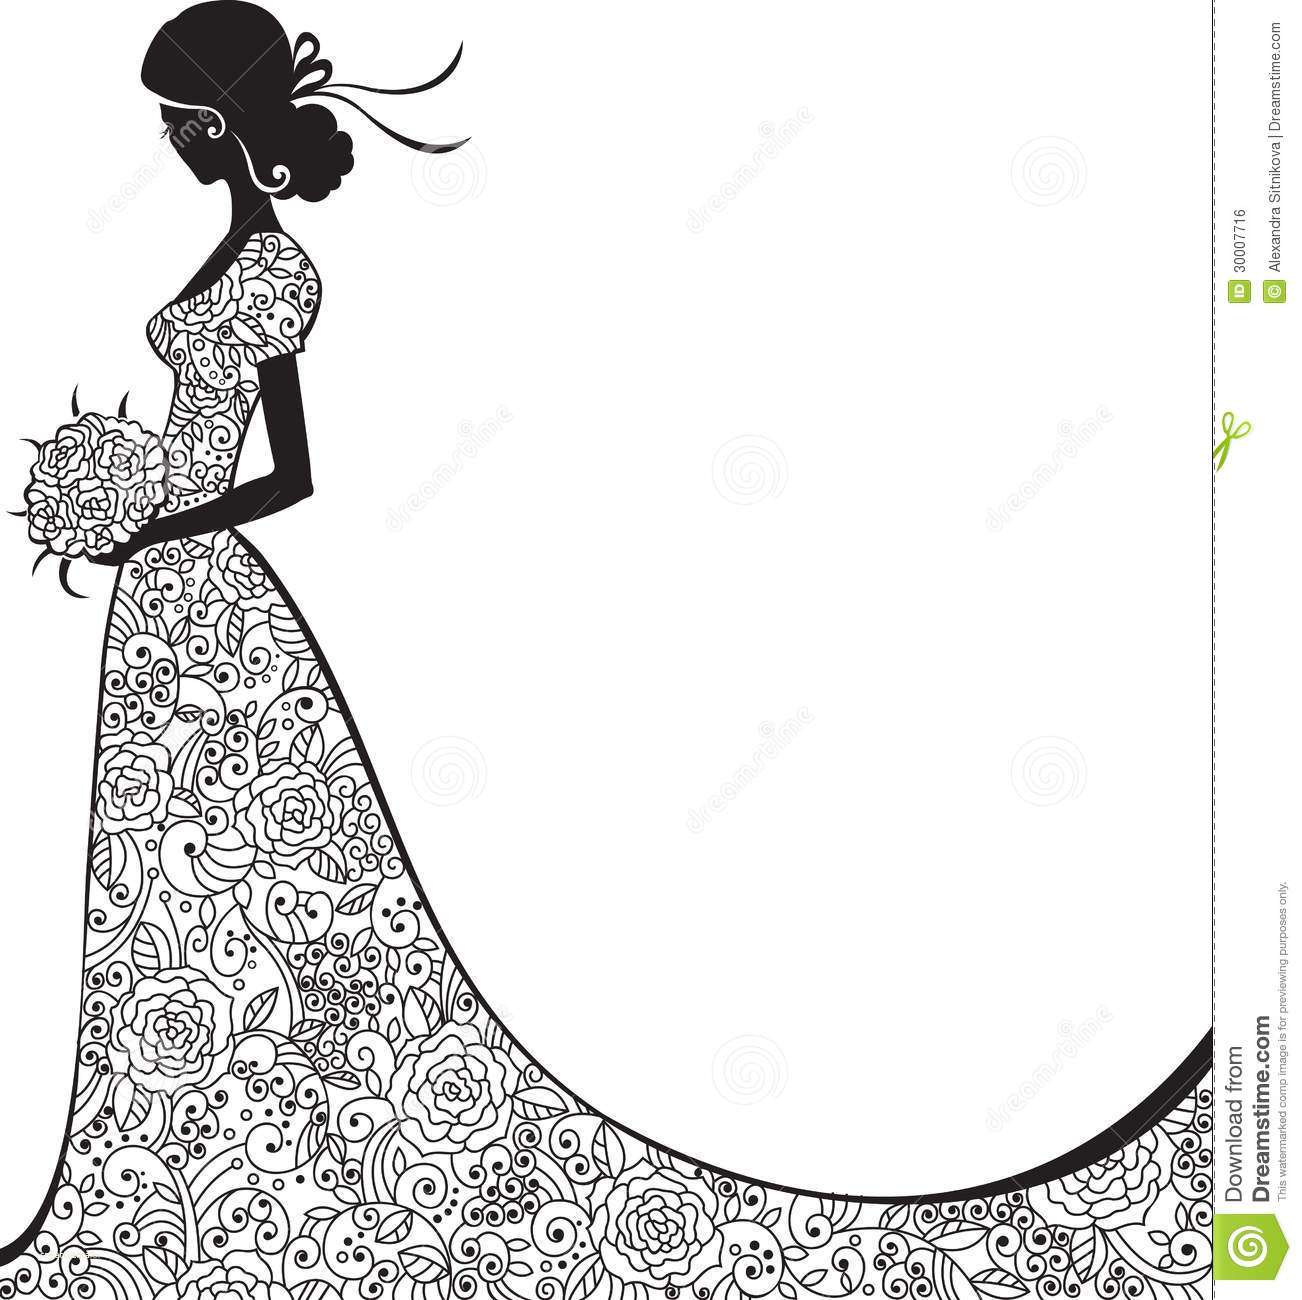 Bride clipart modern bride. Wedding new pencil and